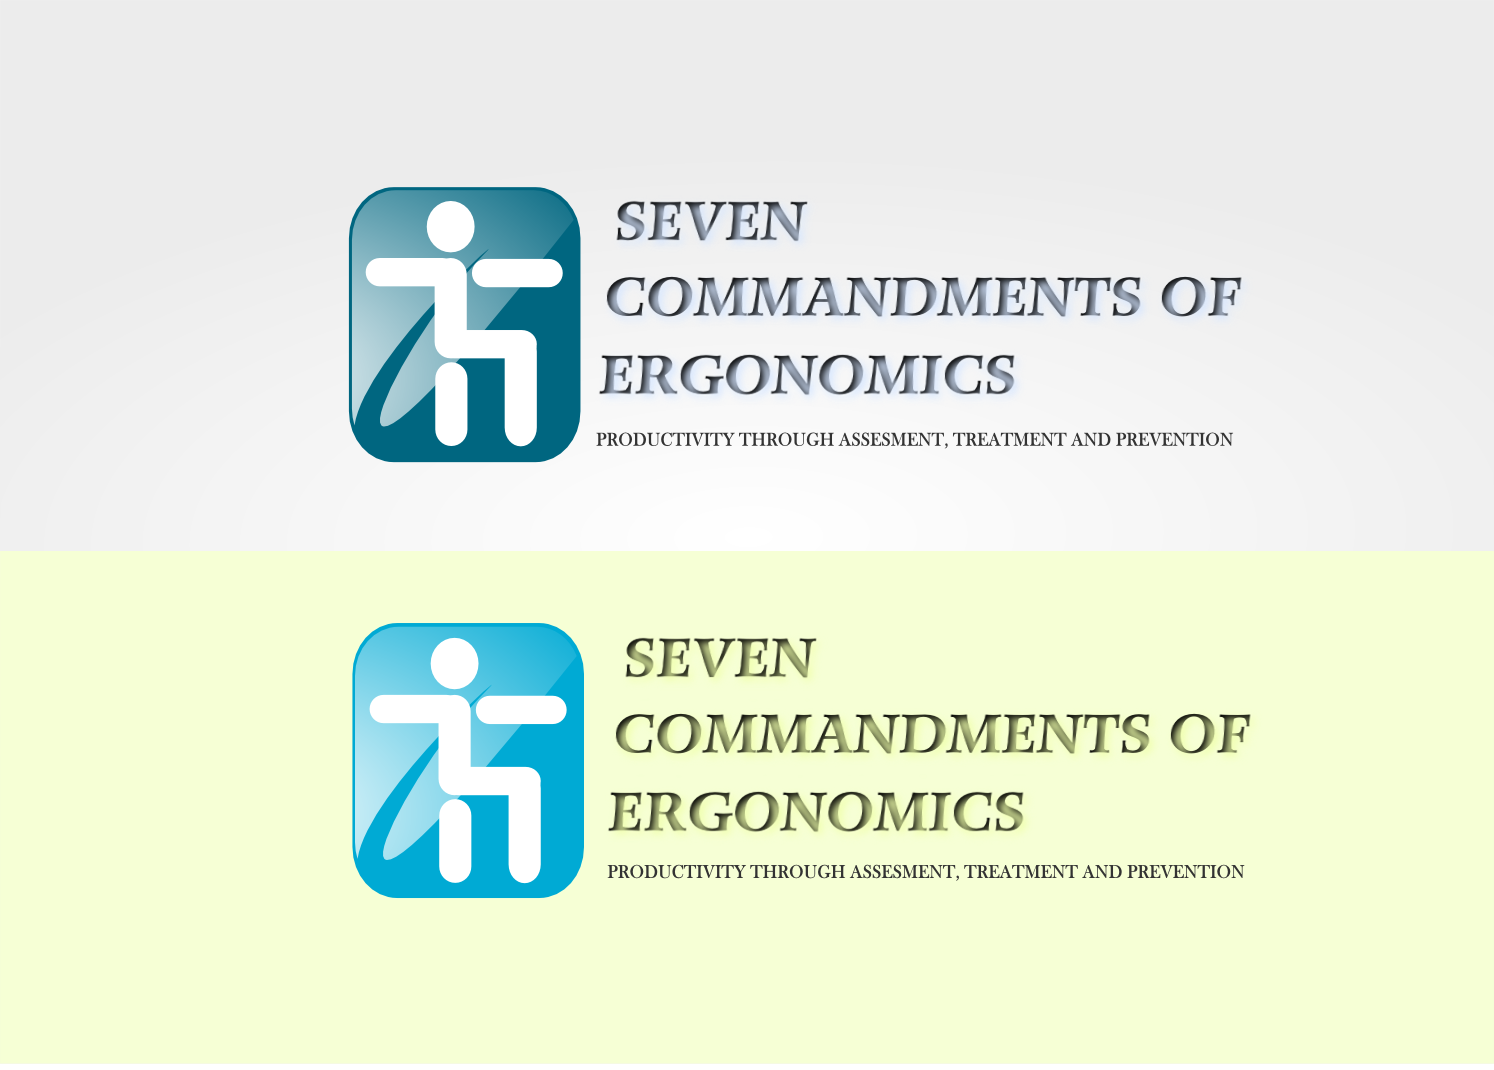 Logo Design by Joseph calunsag Cagaanan - Entry No. 128 in the Logo Design Contest Logo Design for Seven Commandments of Ergonomics.